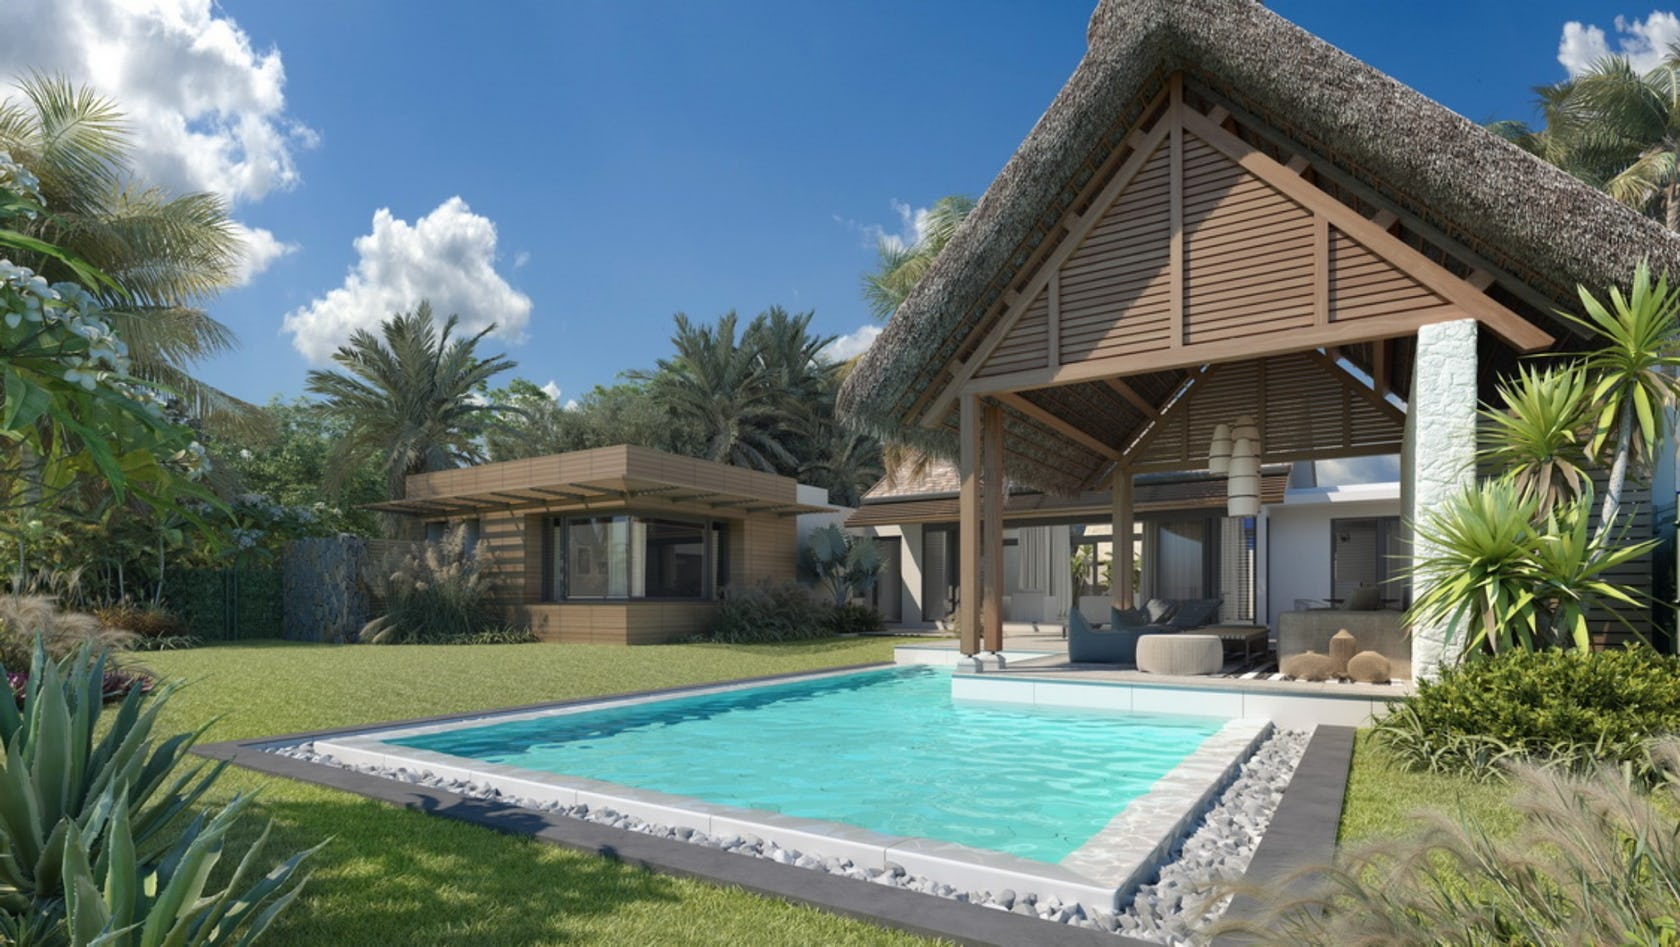 water pool villa building housing house swimming pool outdoors